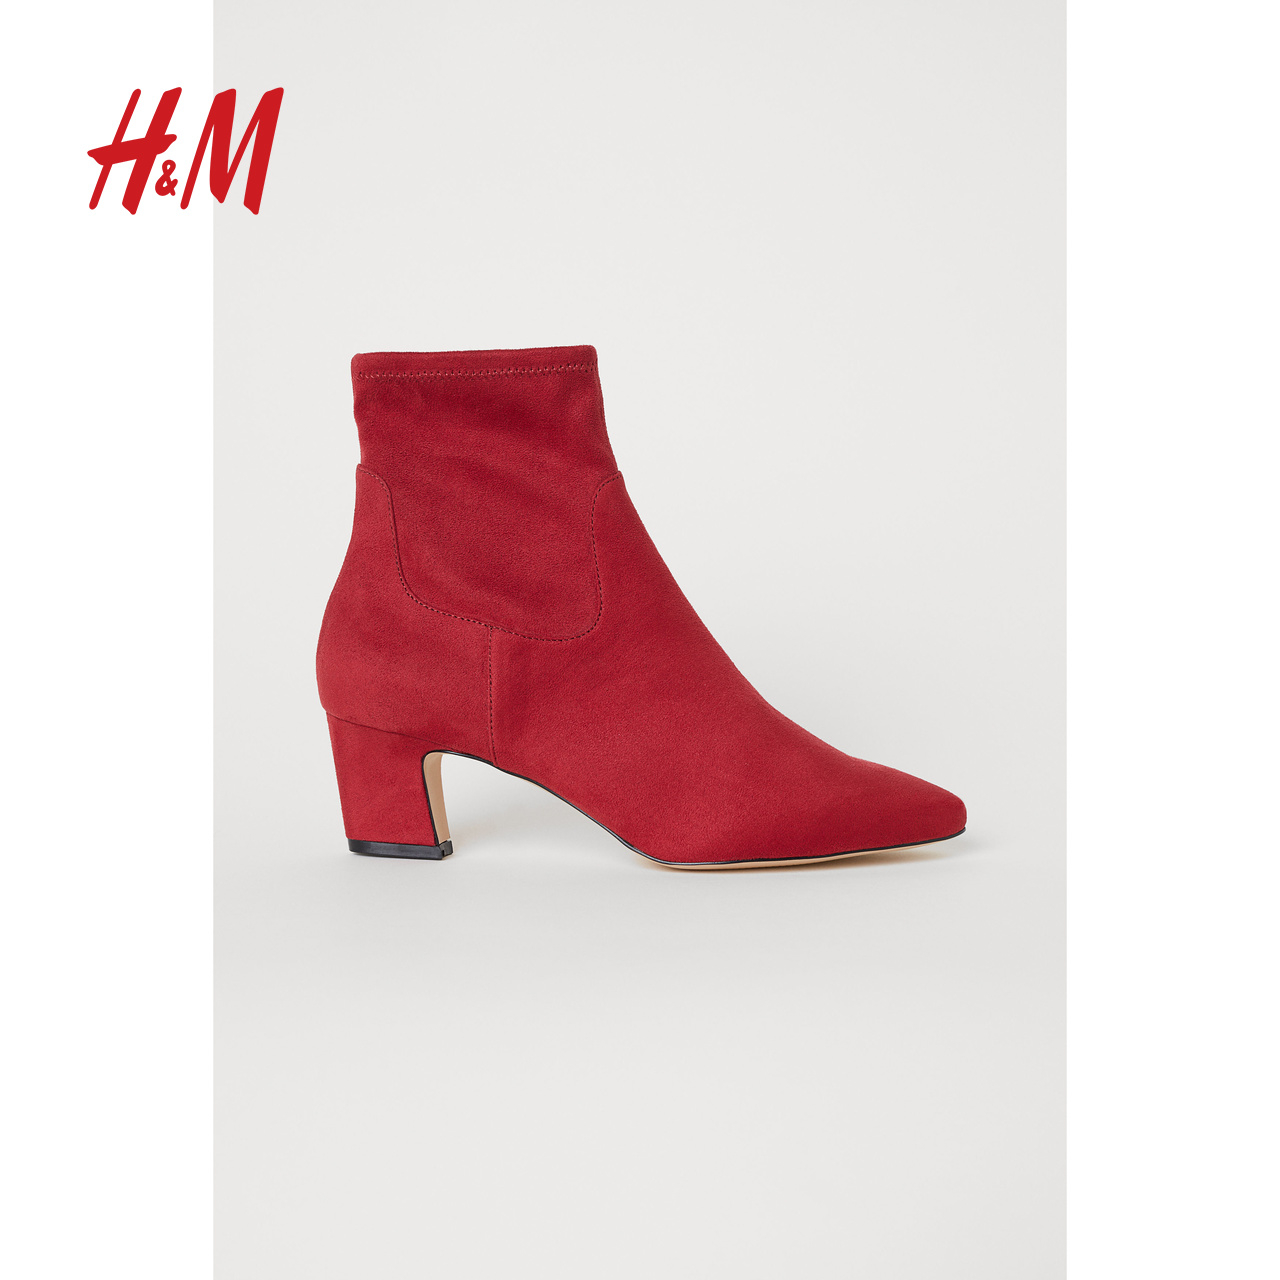 H&M Women's Shoes 2018 New High Heel Boots Fashion Side Zip Suede Ankle Boots HM0657135